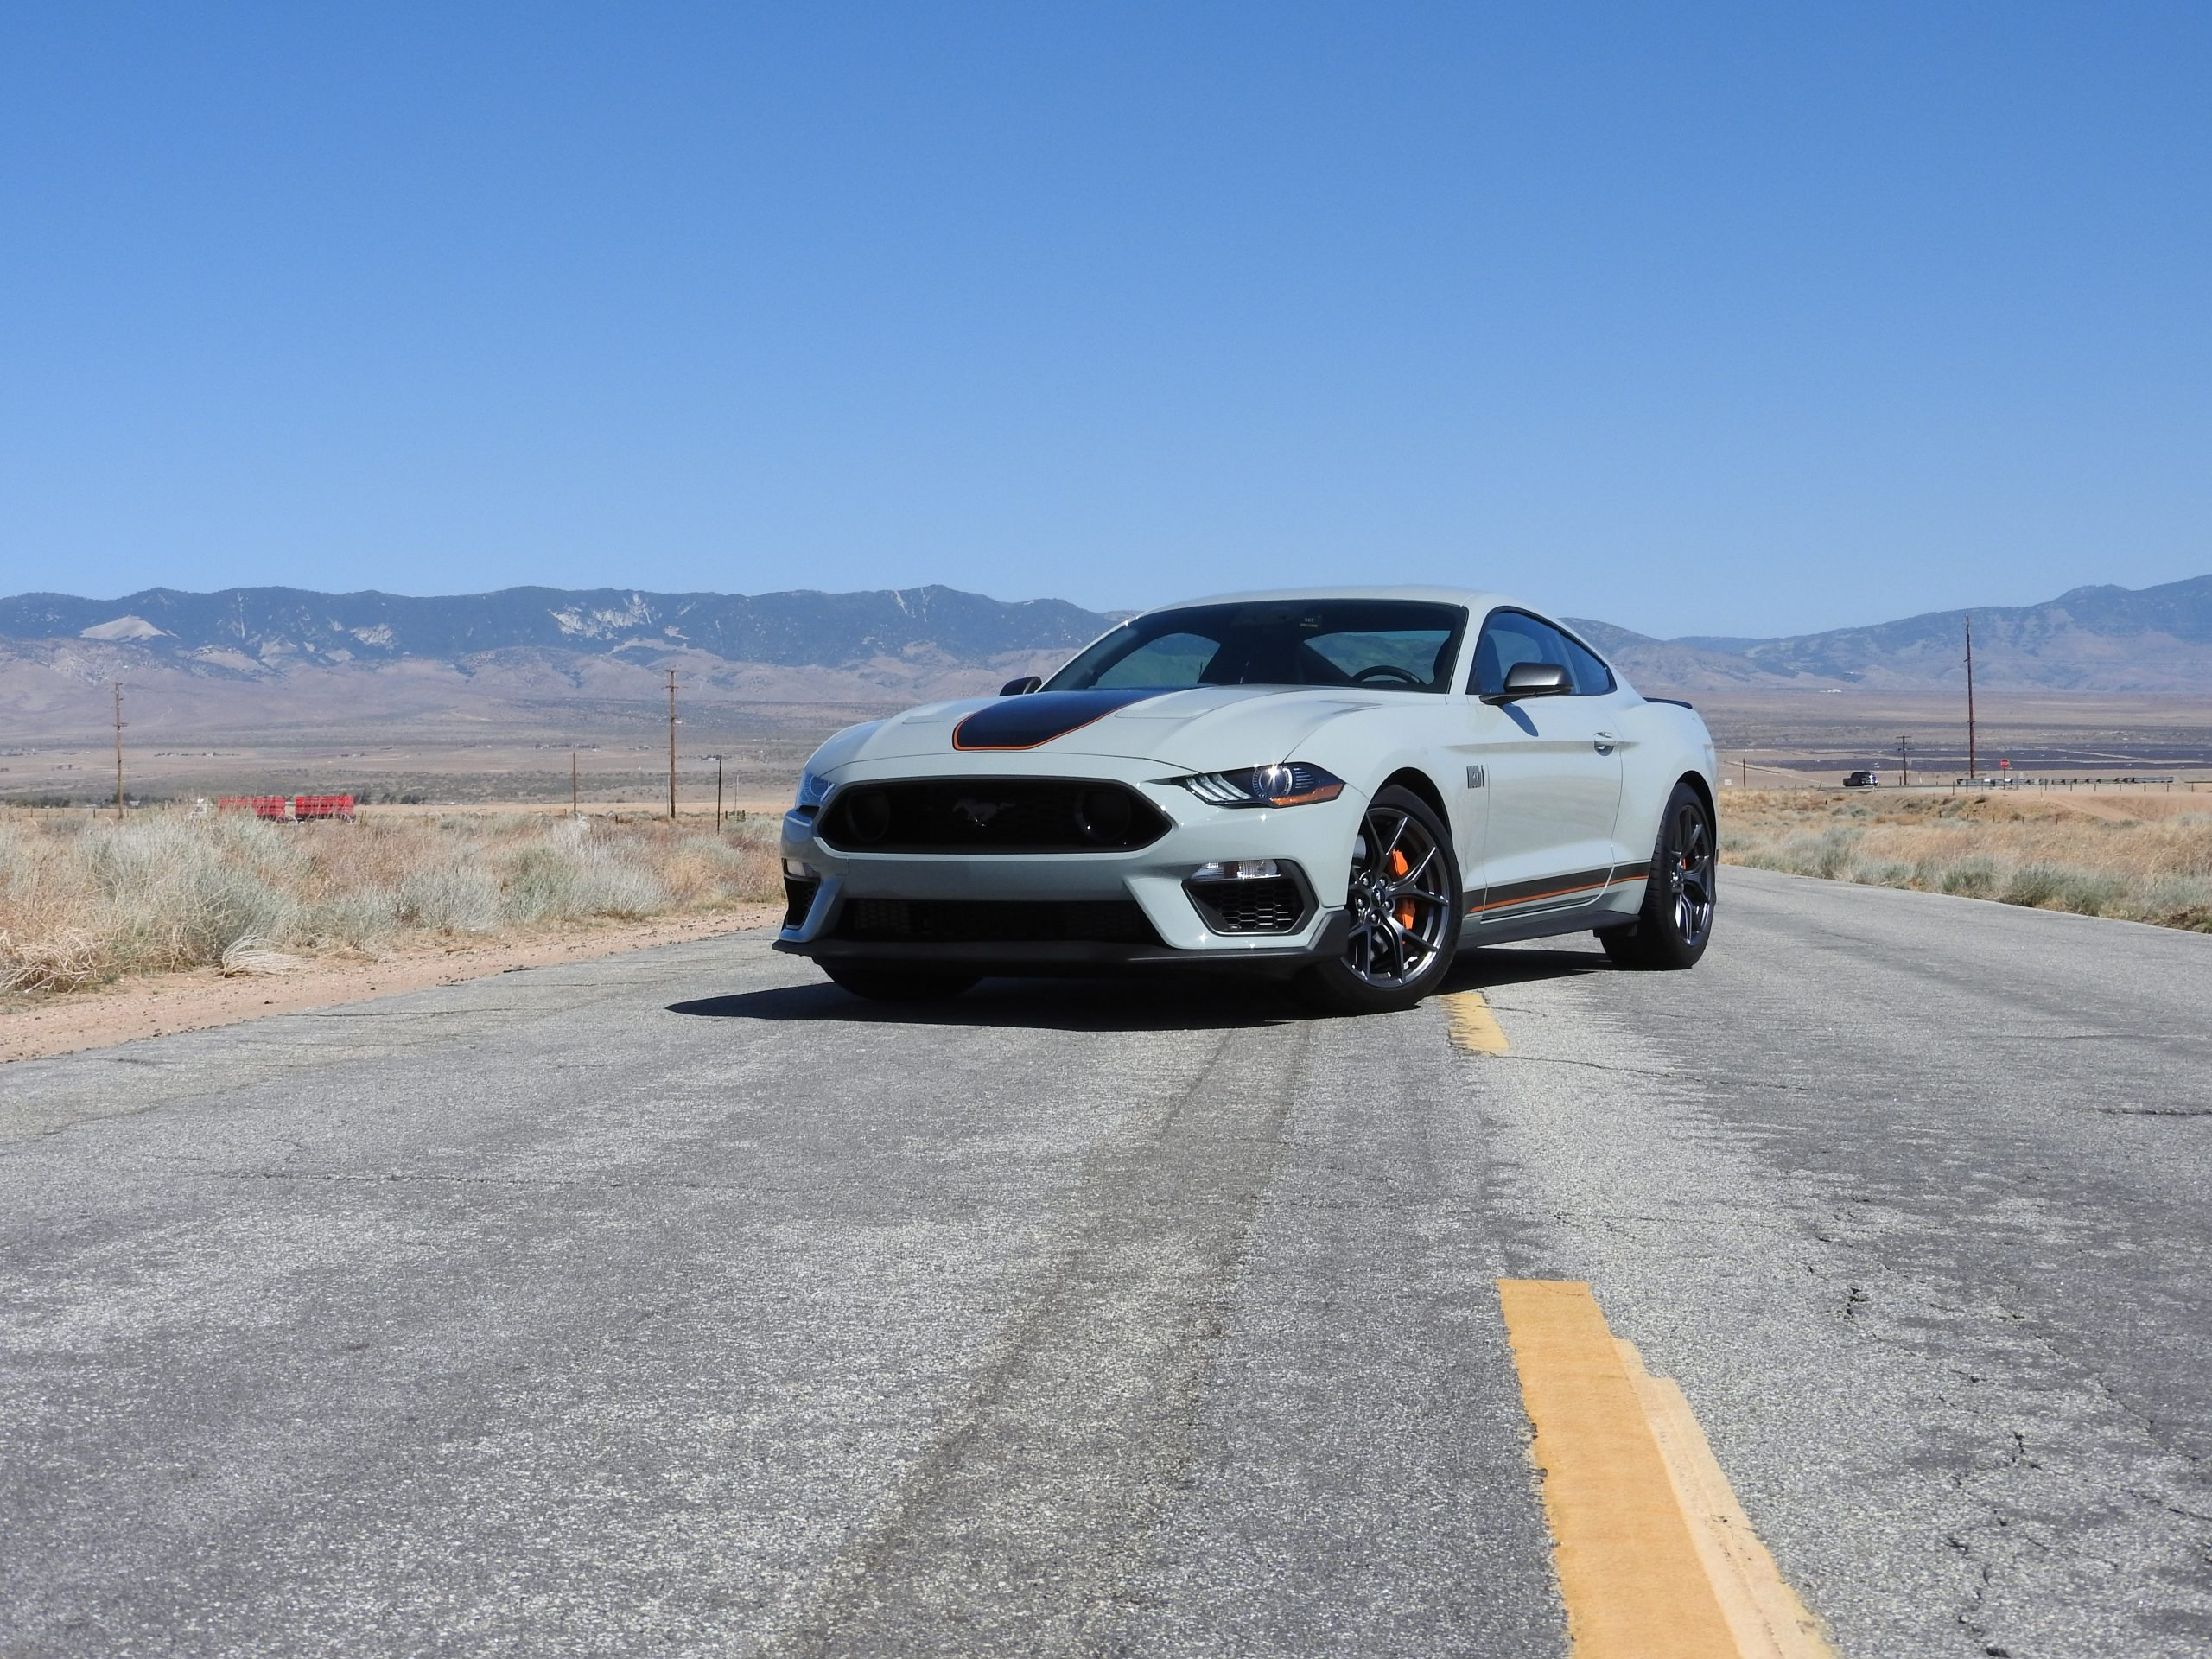 New Mustang Mach 1 front three-quarter